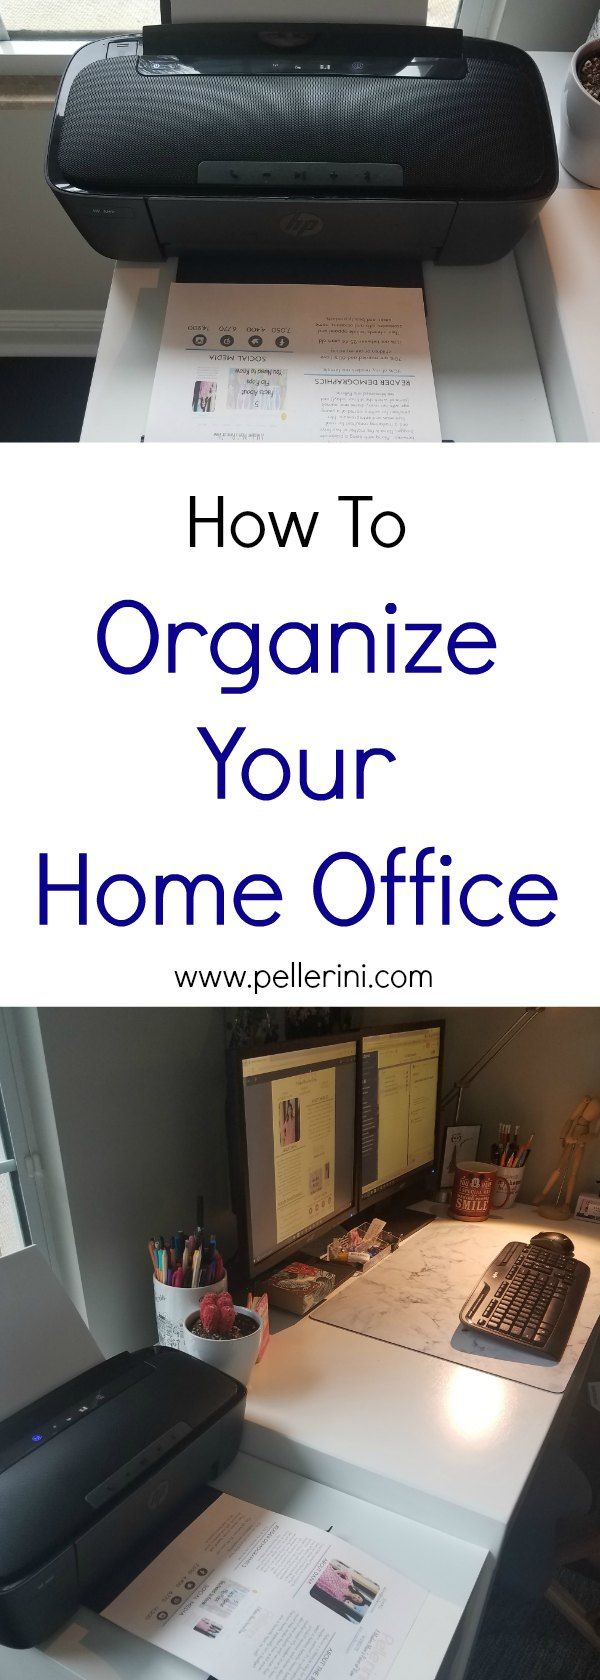 10 must have tools for organizing yourself and your work space.